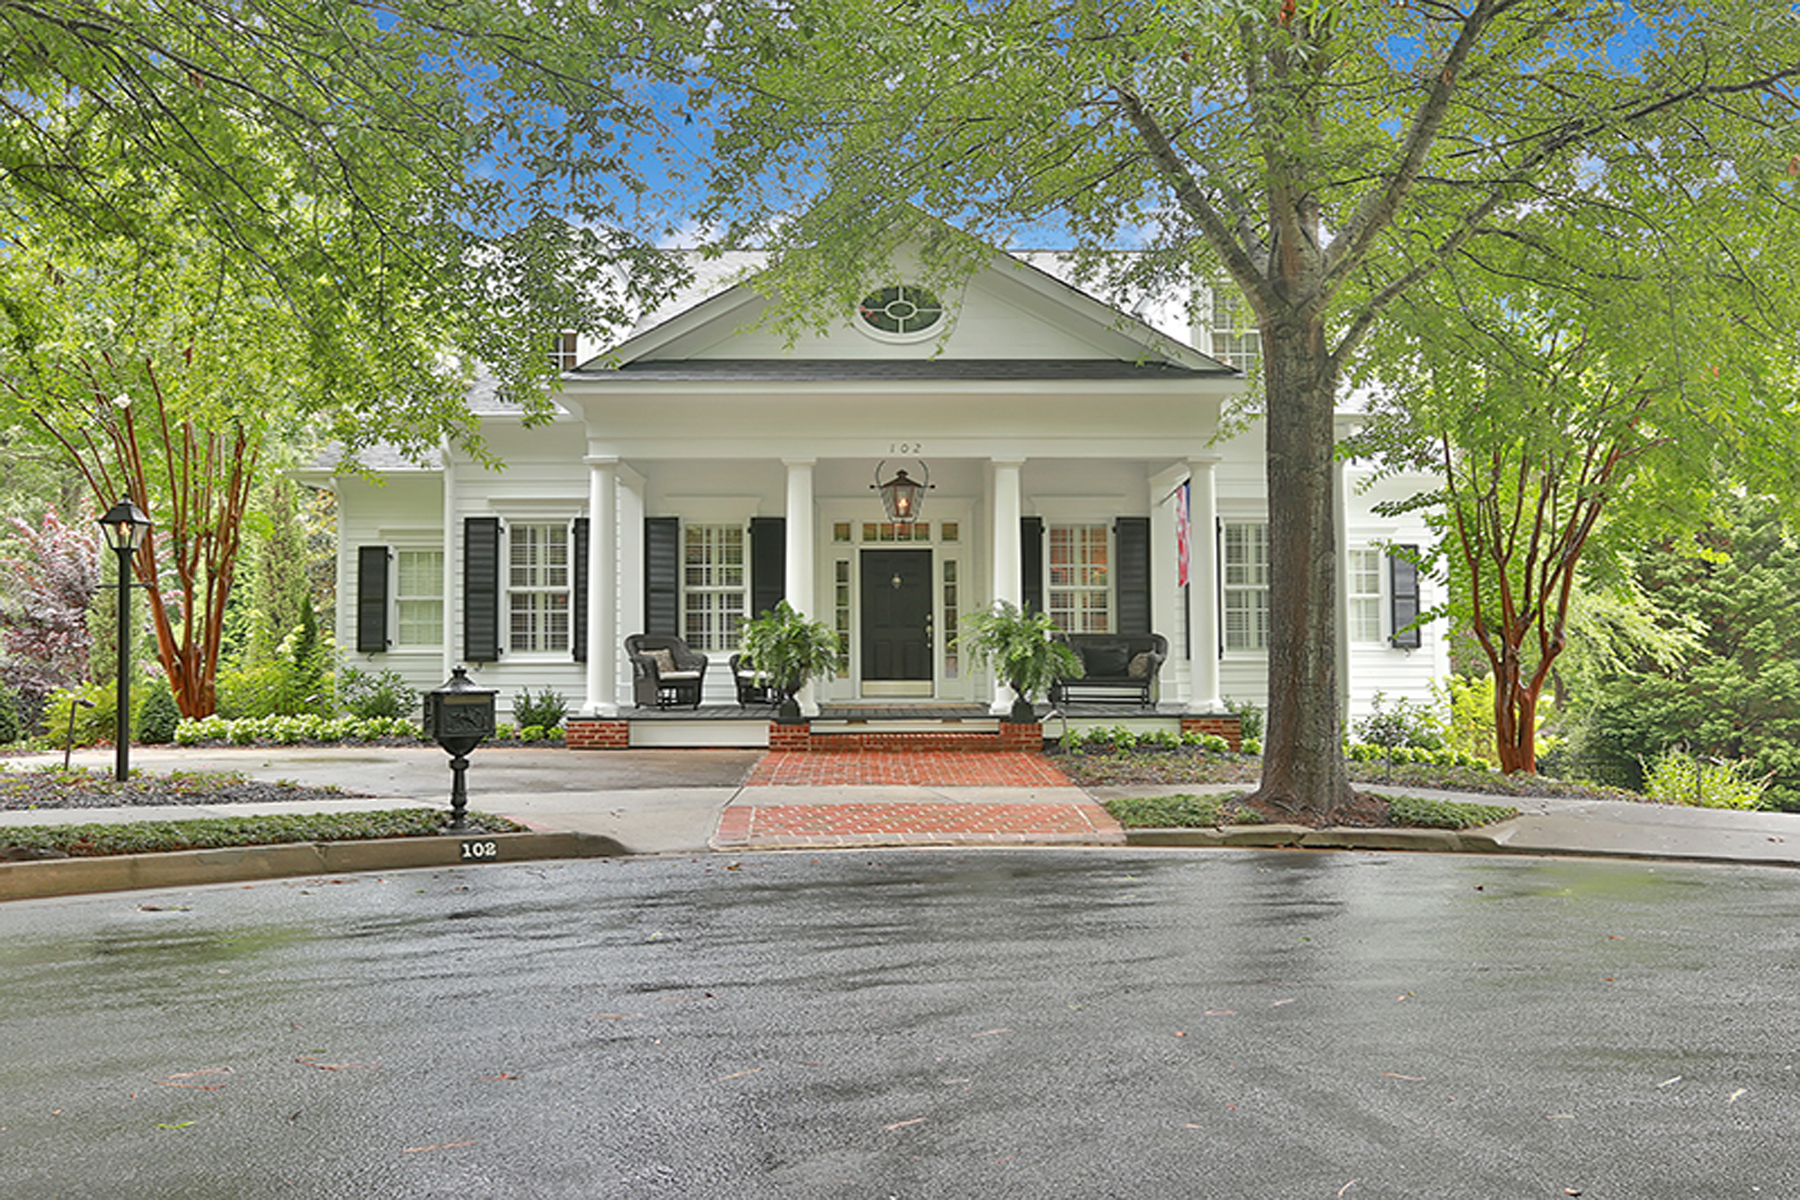 Vivienda unifamiliar por un Venta en Extraordinary North Cove Home with Sophisticated Decor 102 North Cove Drive Peachtree City, Georgia 30269 Estados Unidos